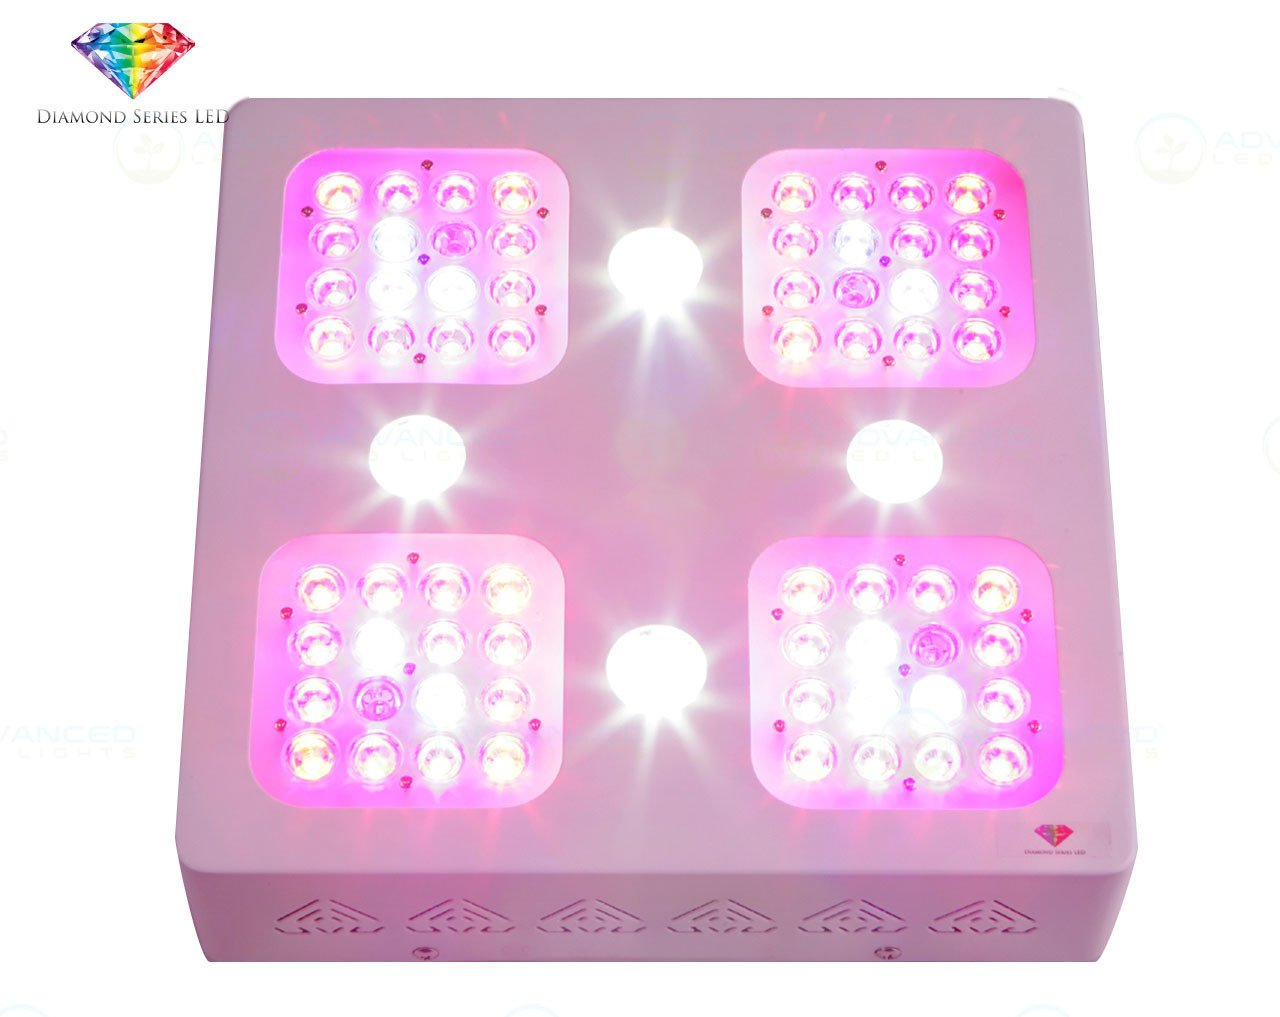 Advanced LED Lights - Full Spectrum LED Grow Light for Indoor Plants Vegs and Flowers - Diamond Series XML 150 With 10W CREE XML LEDs Amazon.com ...  sc 1 st  Amazon.com & Advanced LED Lights - Full Spectrum LED Grow Light for Indoor ... azcodes.com